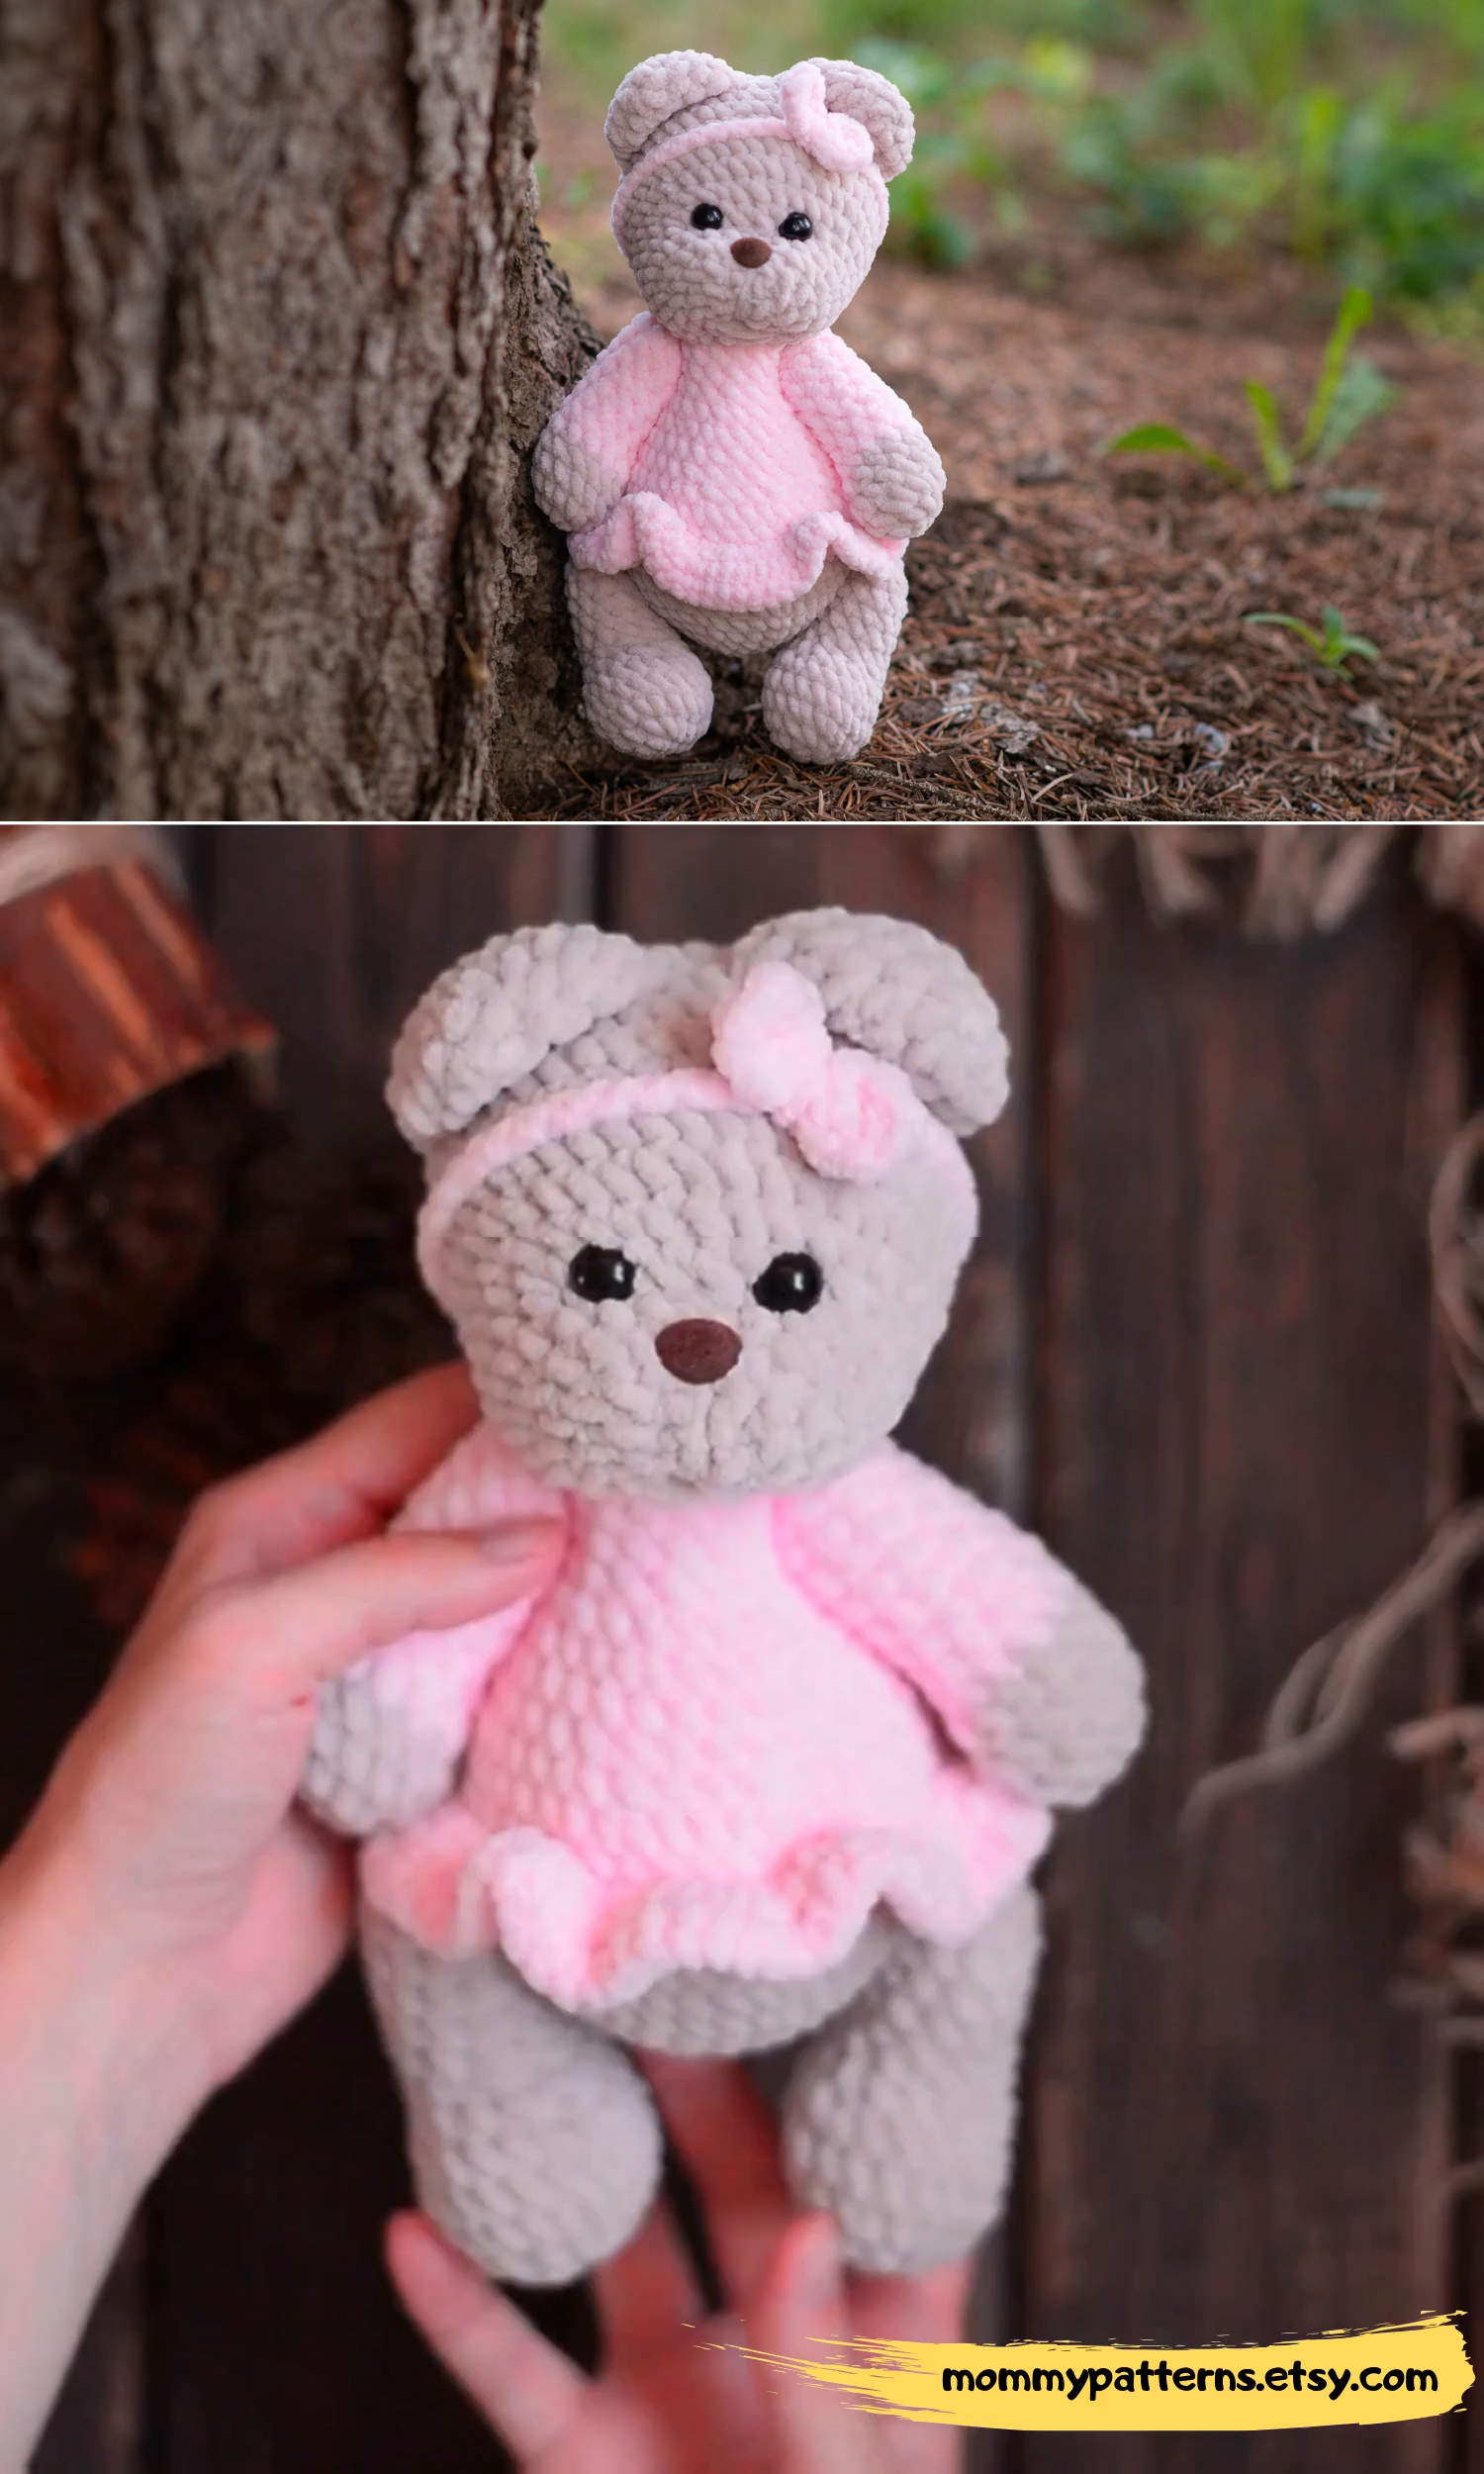 Amigurumi EASY CROCHET PATTERN Teddy bear in dress. This crochet pattern contains a detailed